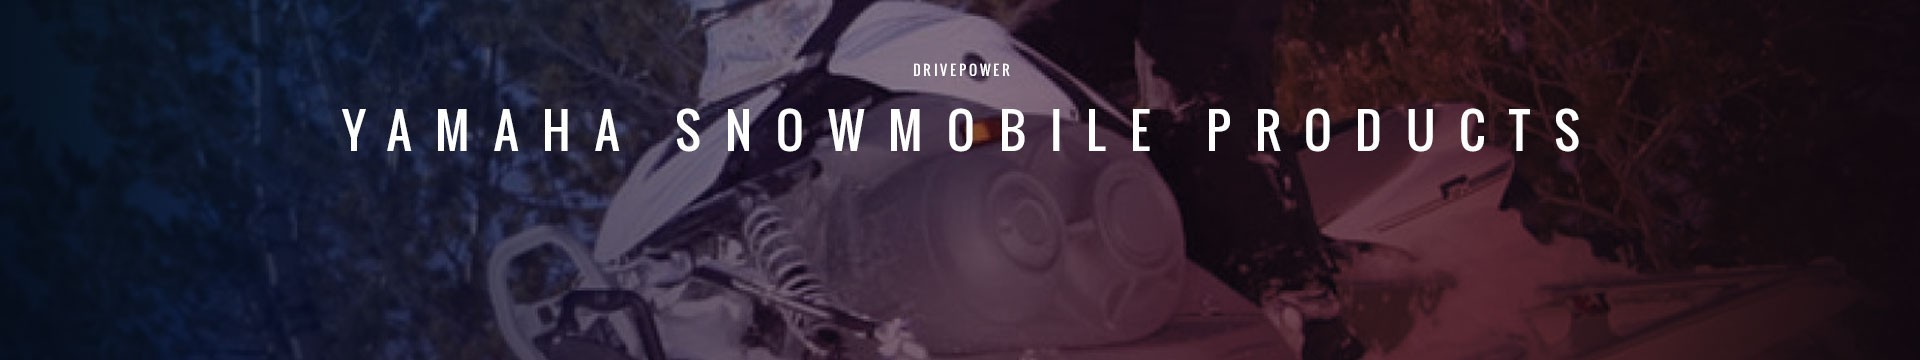 Drivepower Yamaha Snowmobile Products